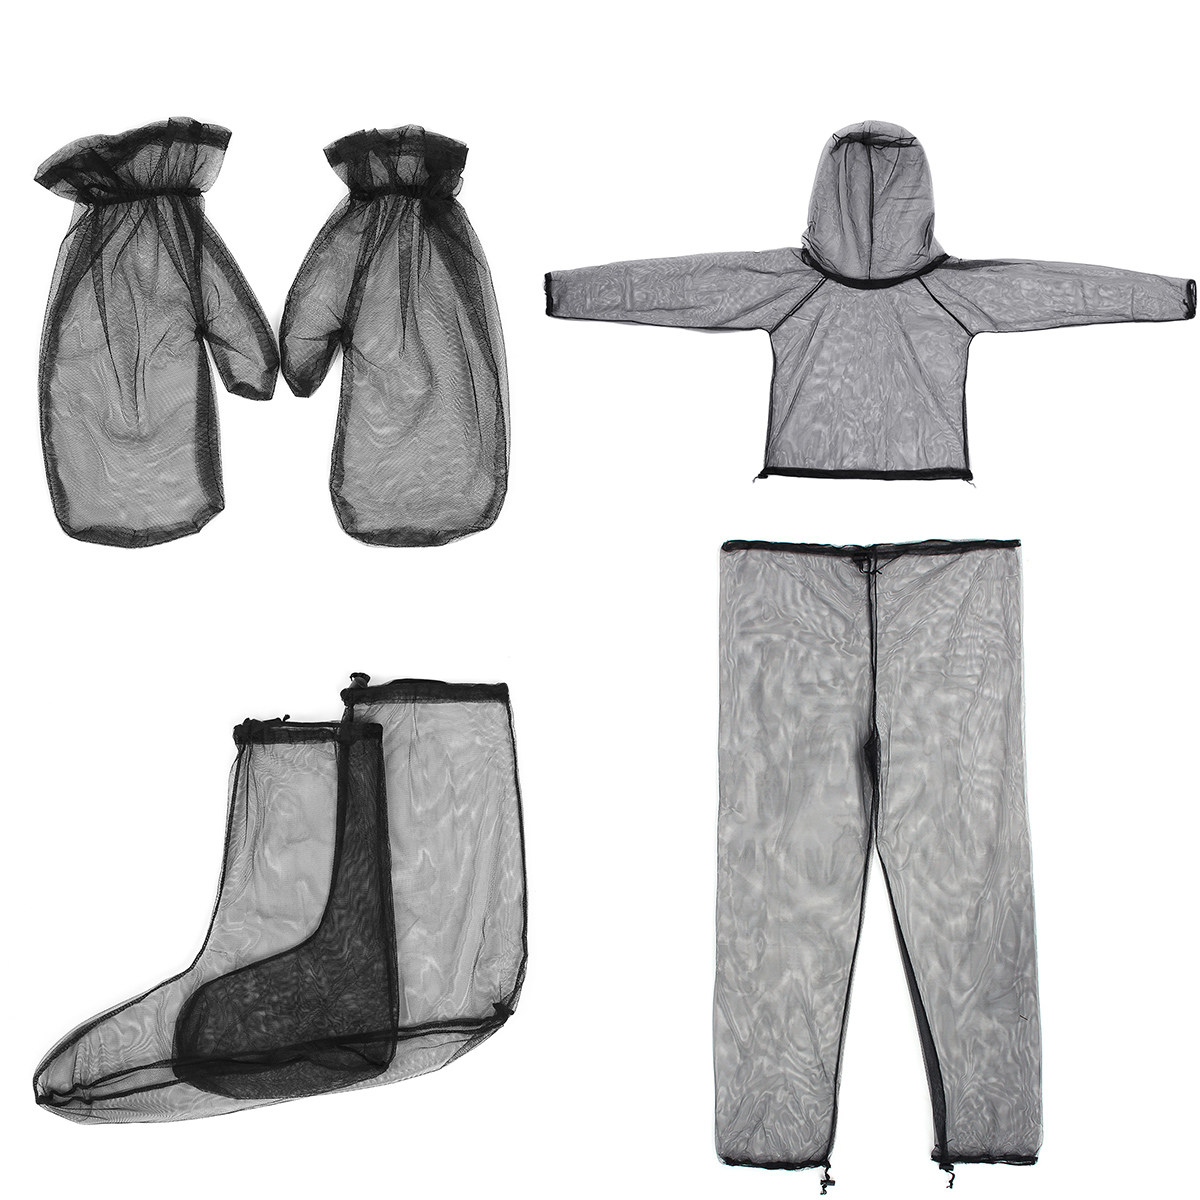 4PCS Jacket+Pants+Gloves+Feet Mosquito-Proof Suit Lightweight High-Density Mesh Outdoor Traveling Camping Clothing Suit